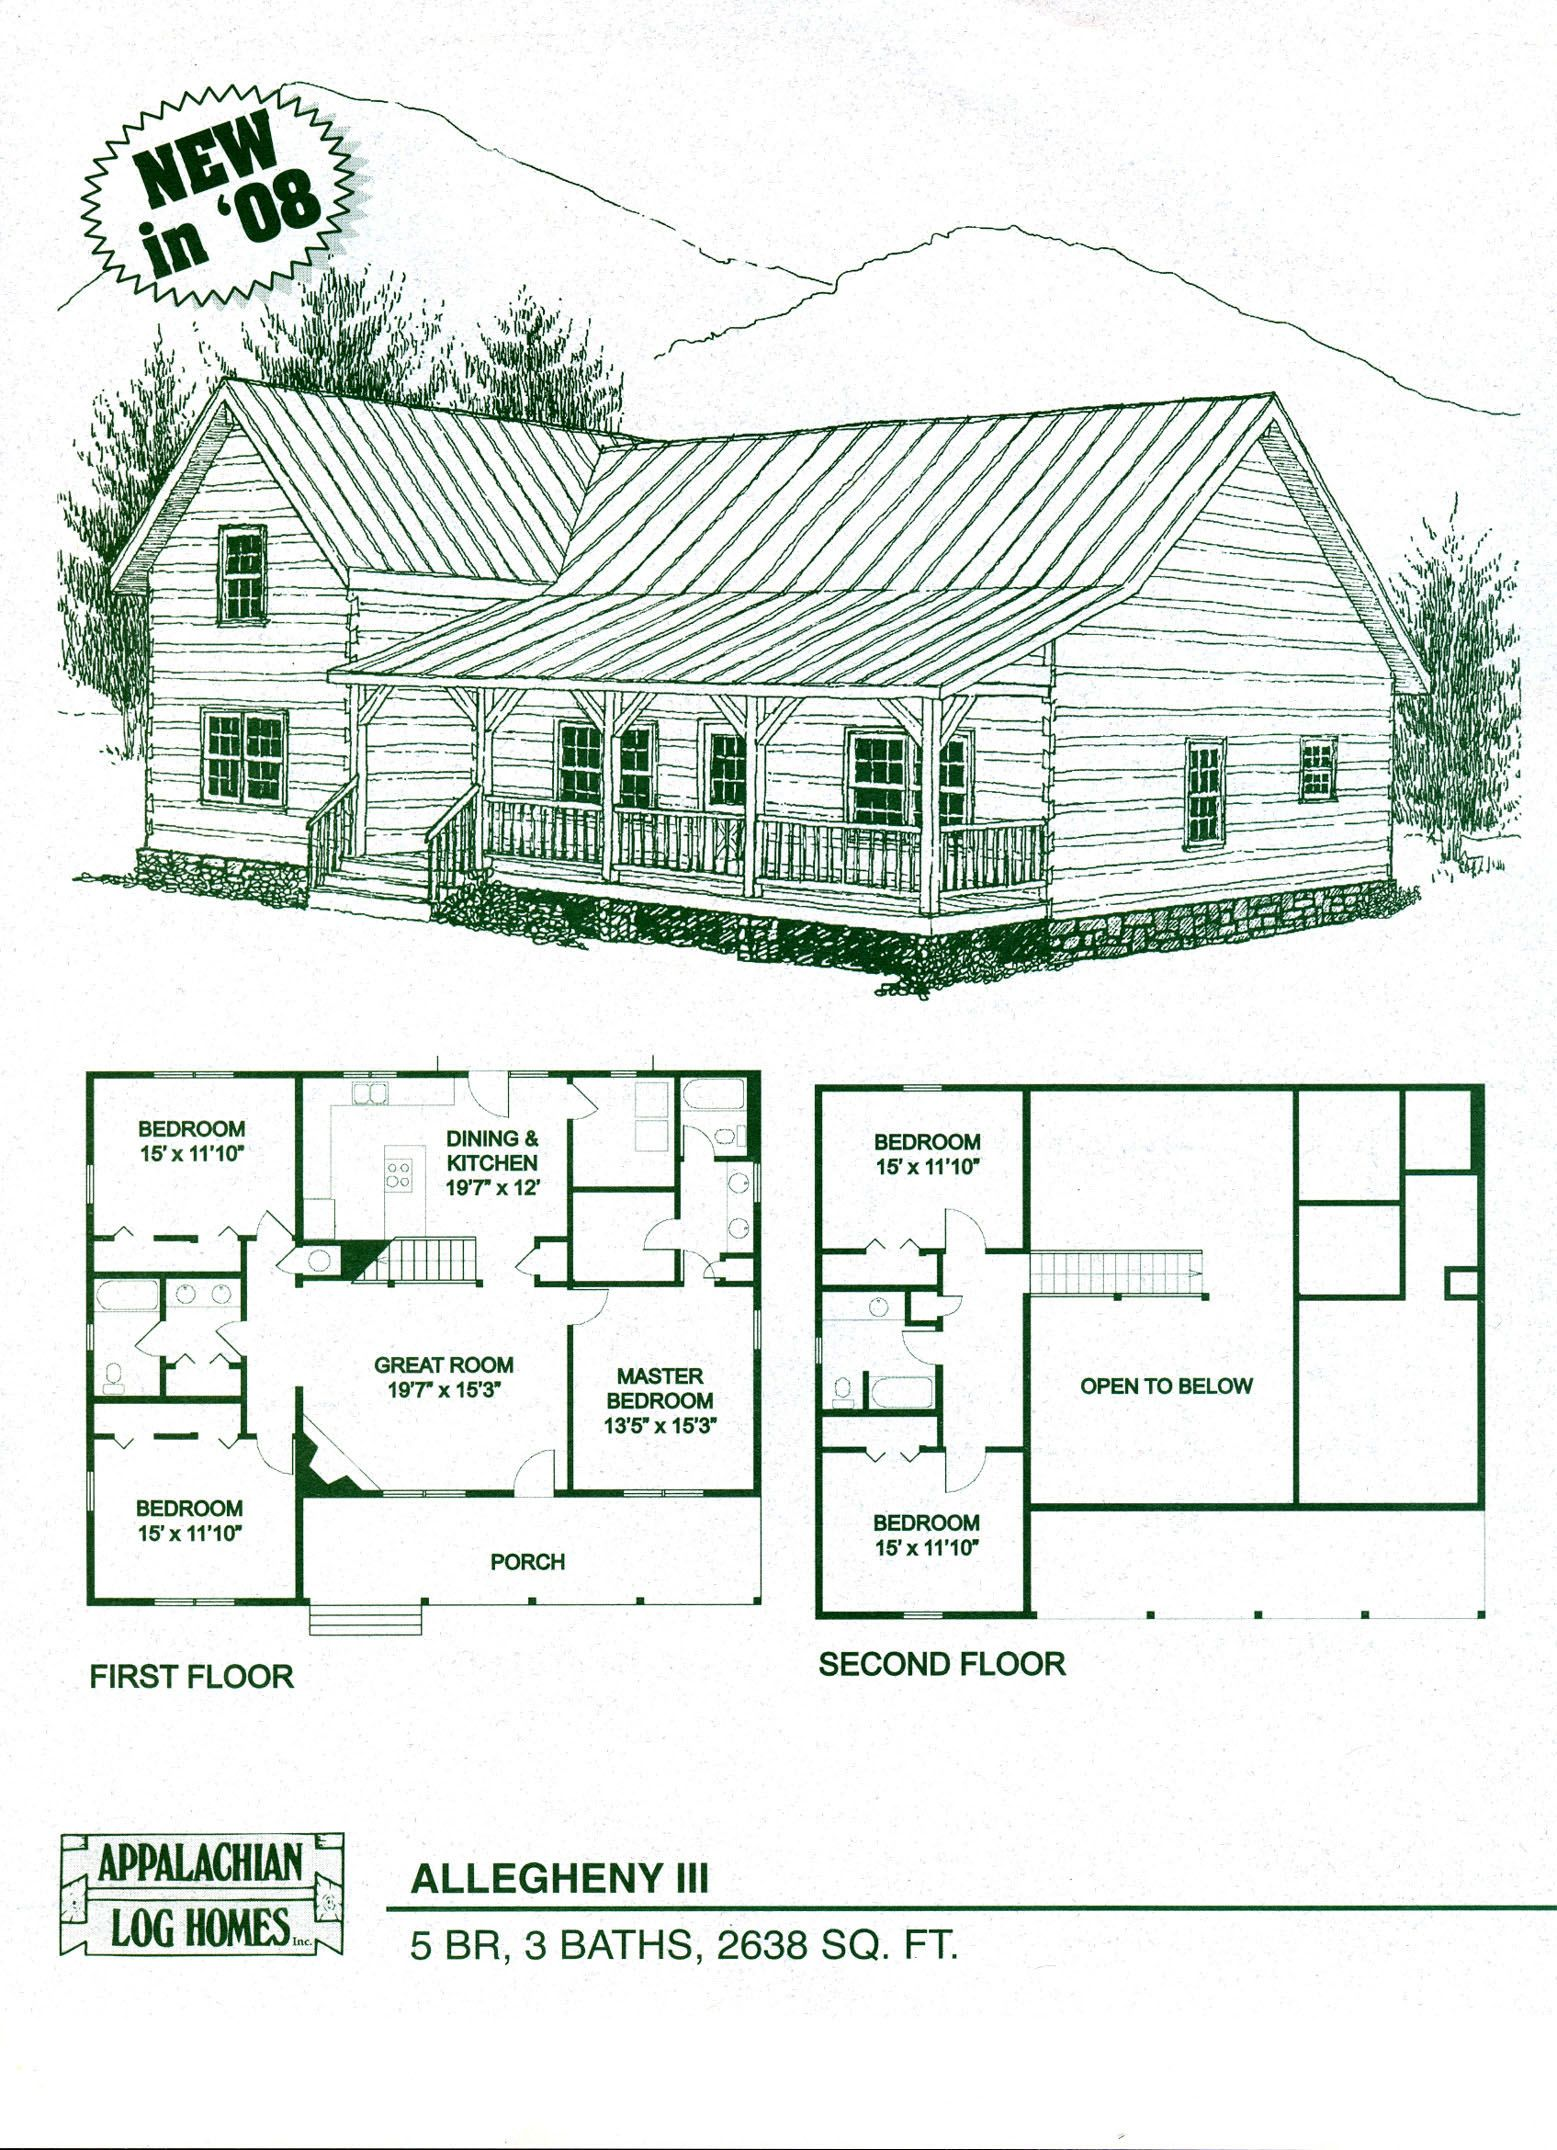 Log home floor plans log cabin kits appalachian log for Cabin home plans and designs